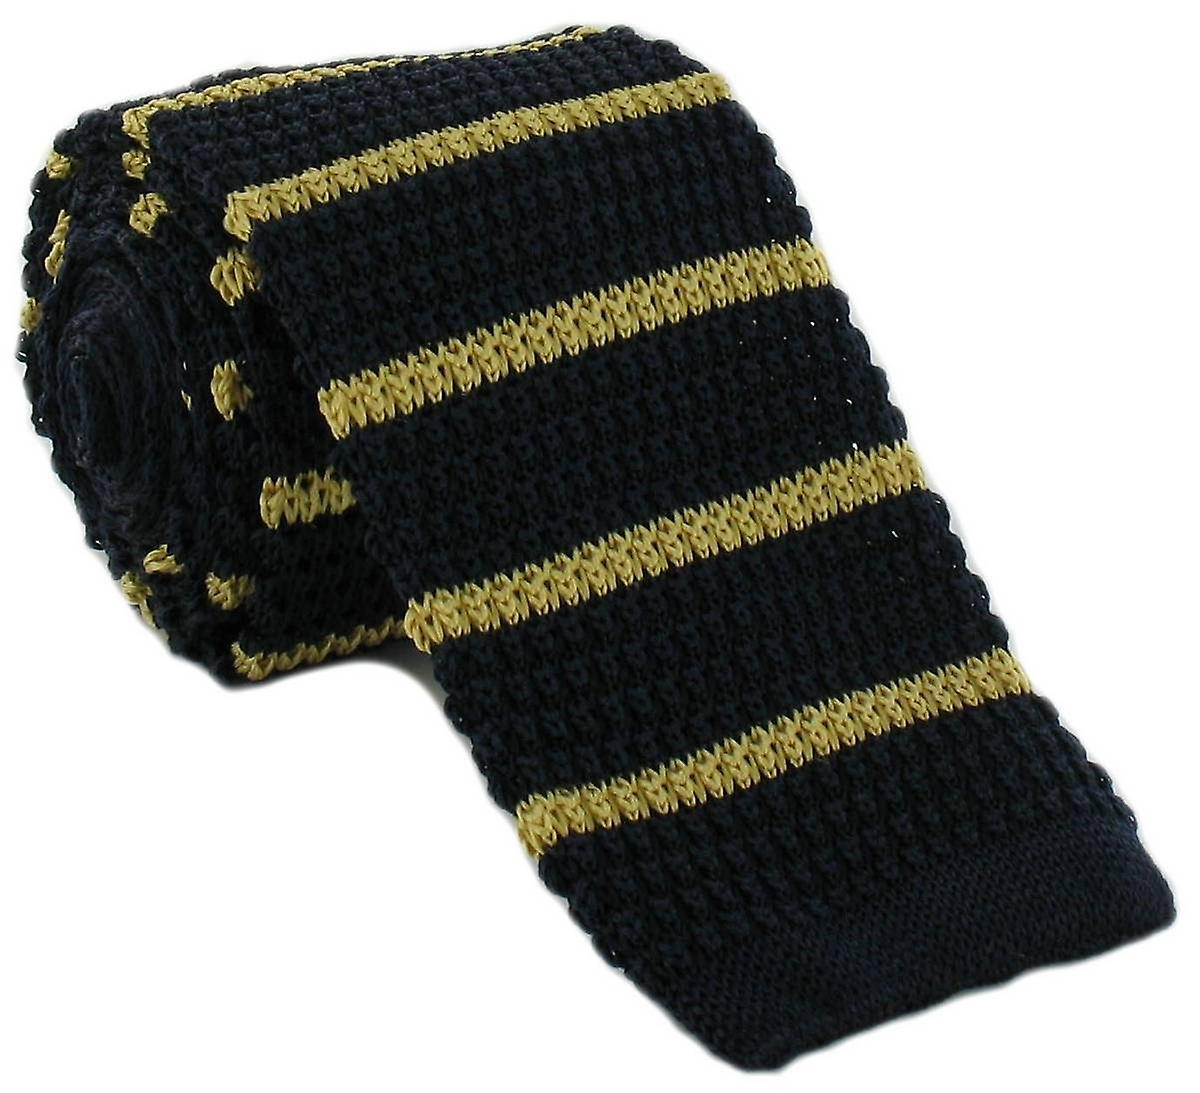 Michelsons of London Silk Knitted Striped Skinny Tie - Navy/Yellow